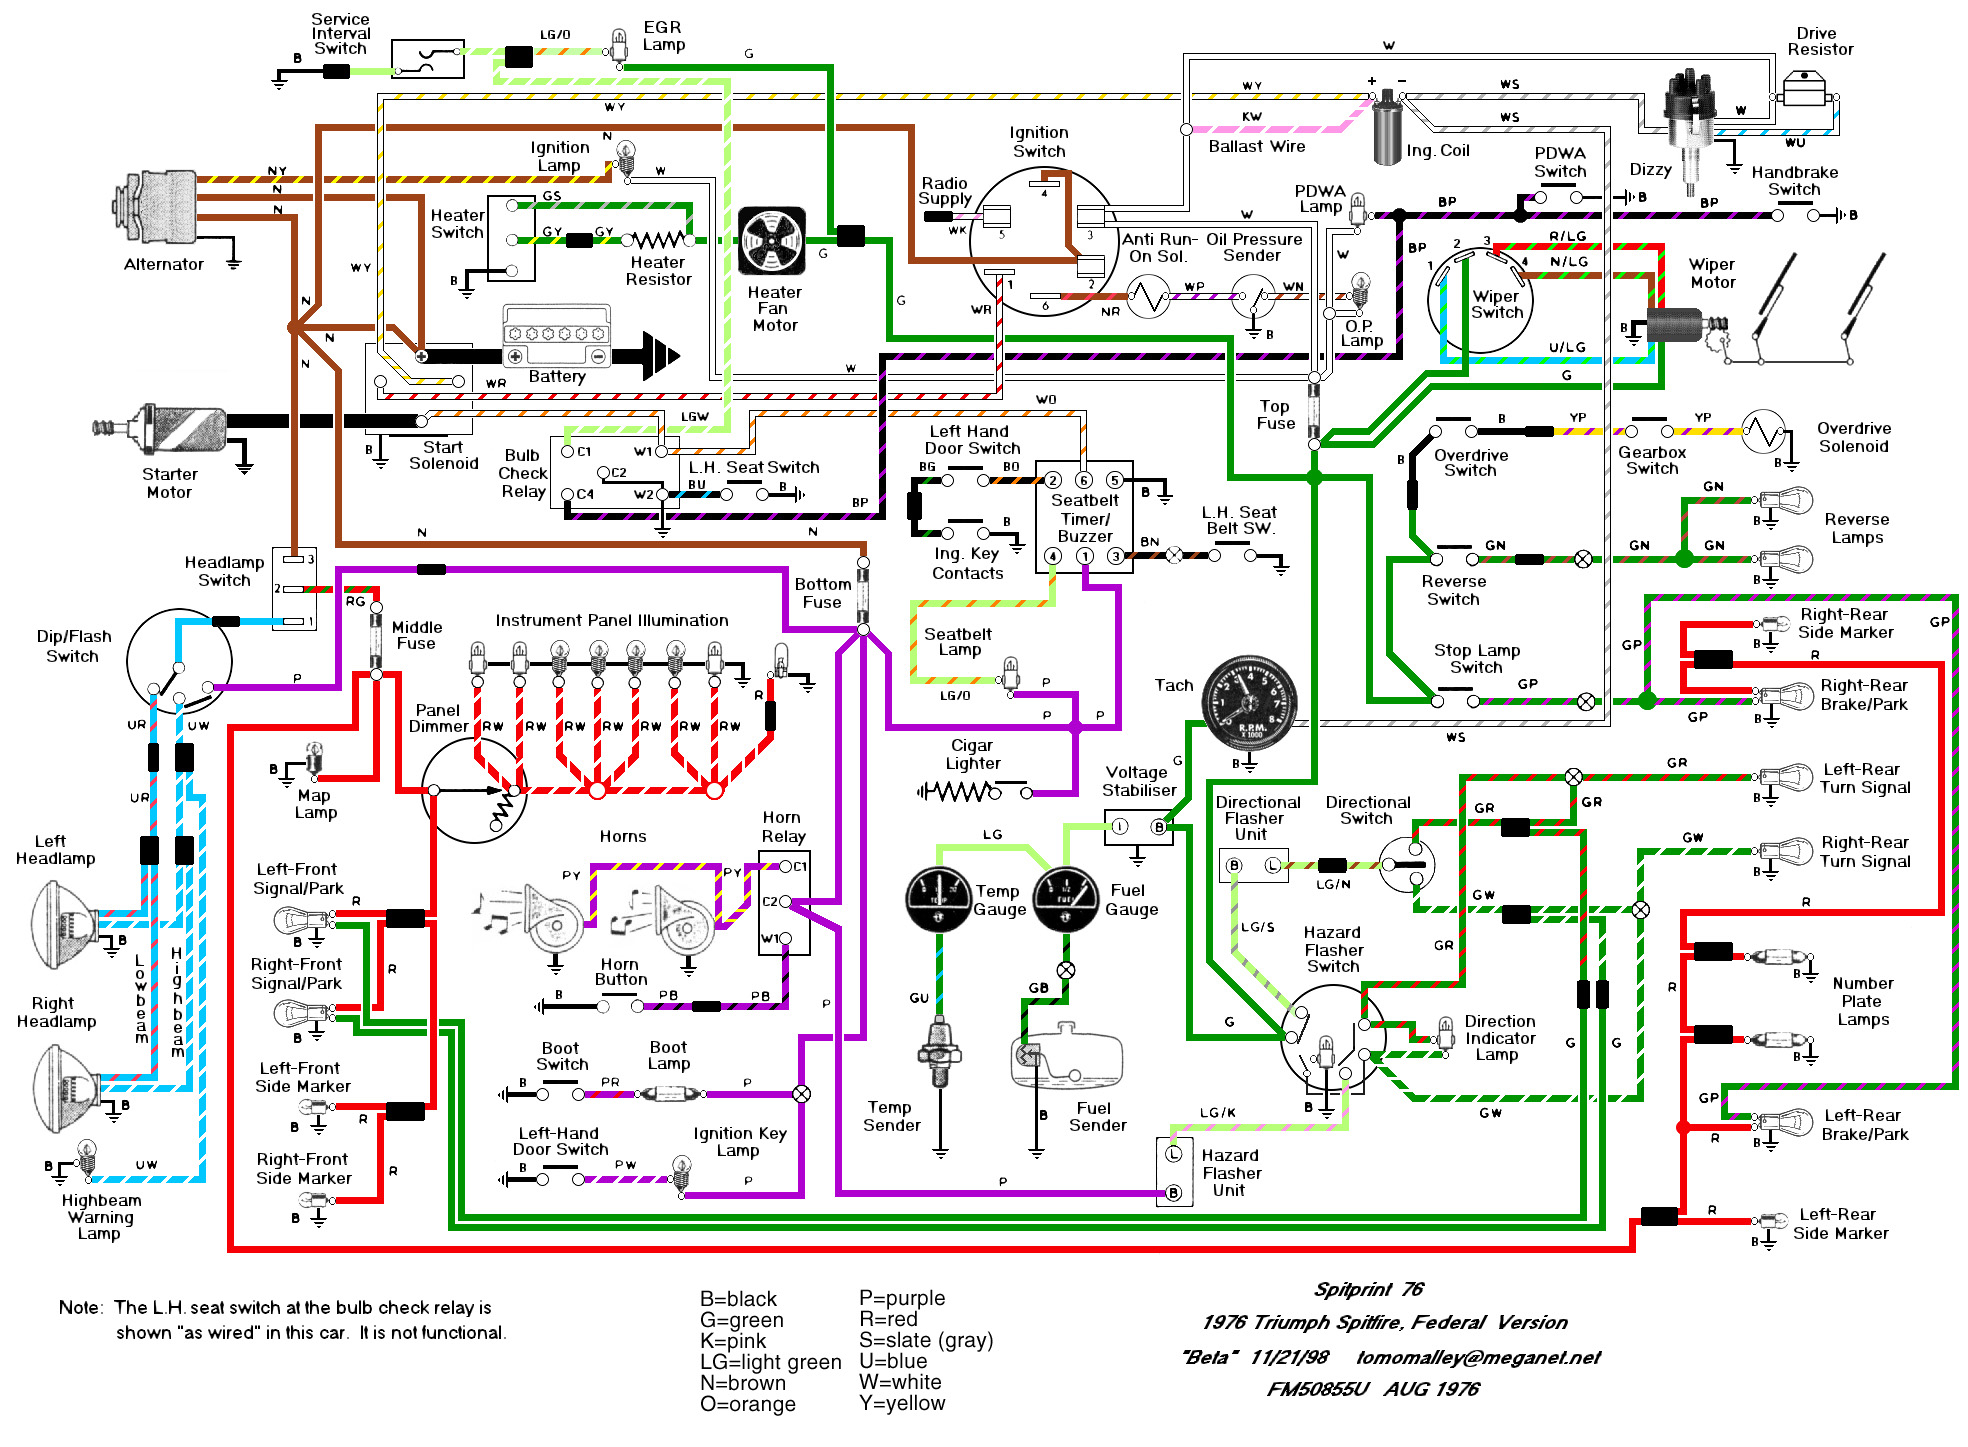 12v Battery Wiring Diagram Schematic Diagrams Fleetwood Images Gallery